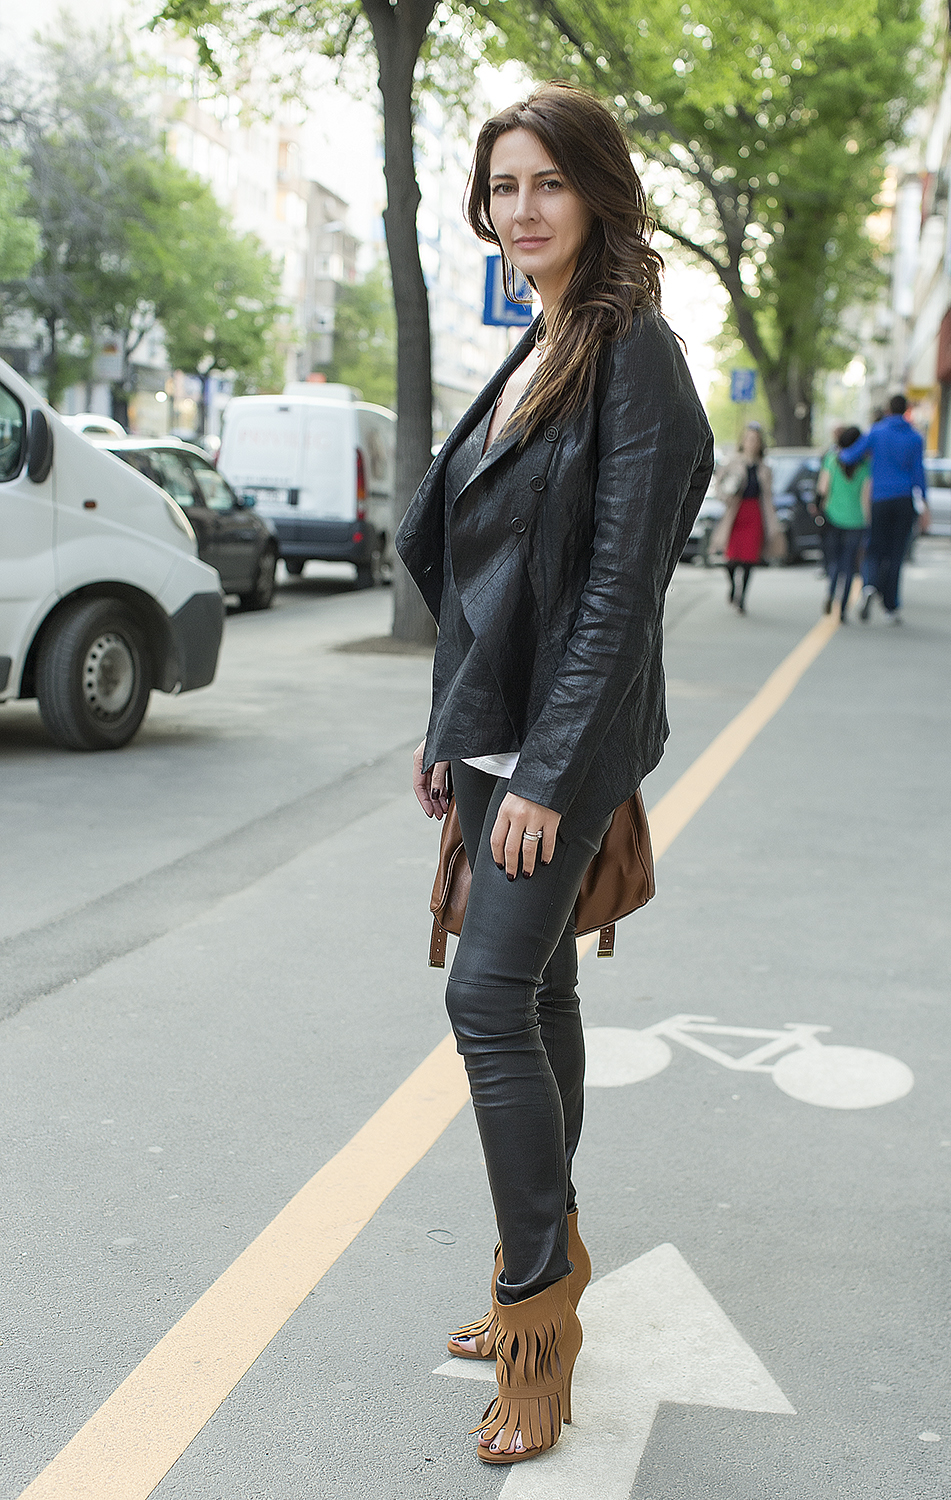 Spring Street Fashion Bucharest